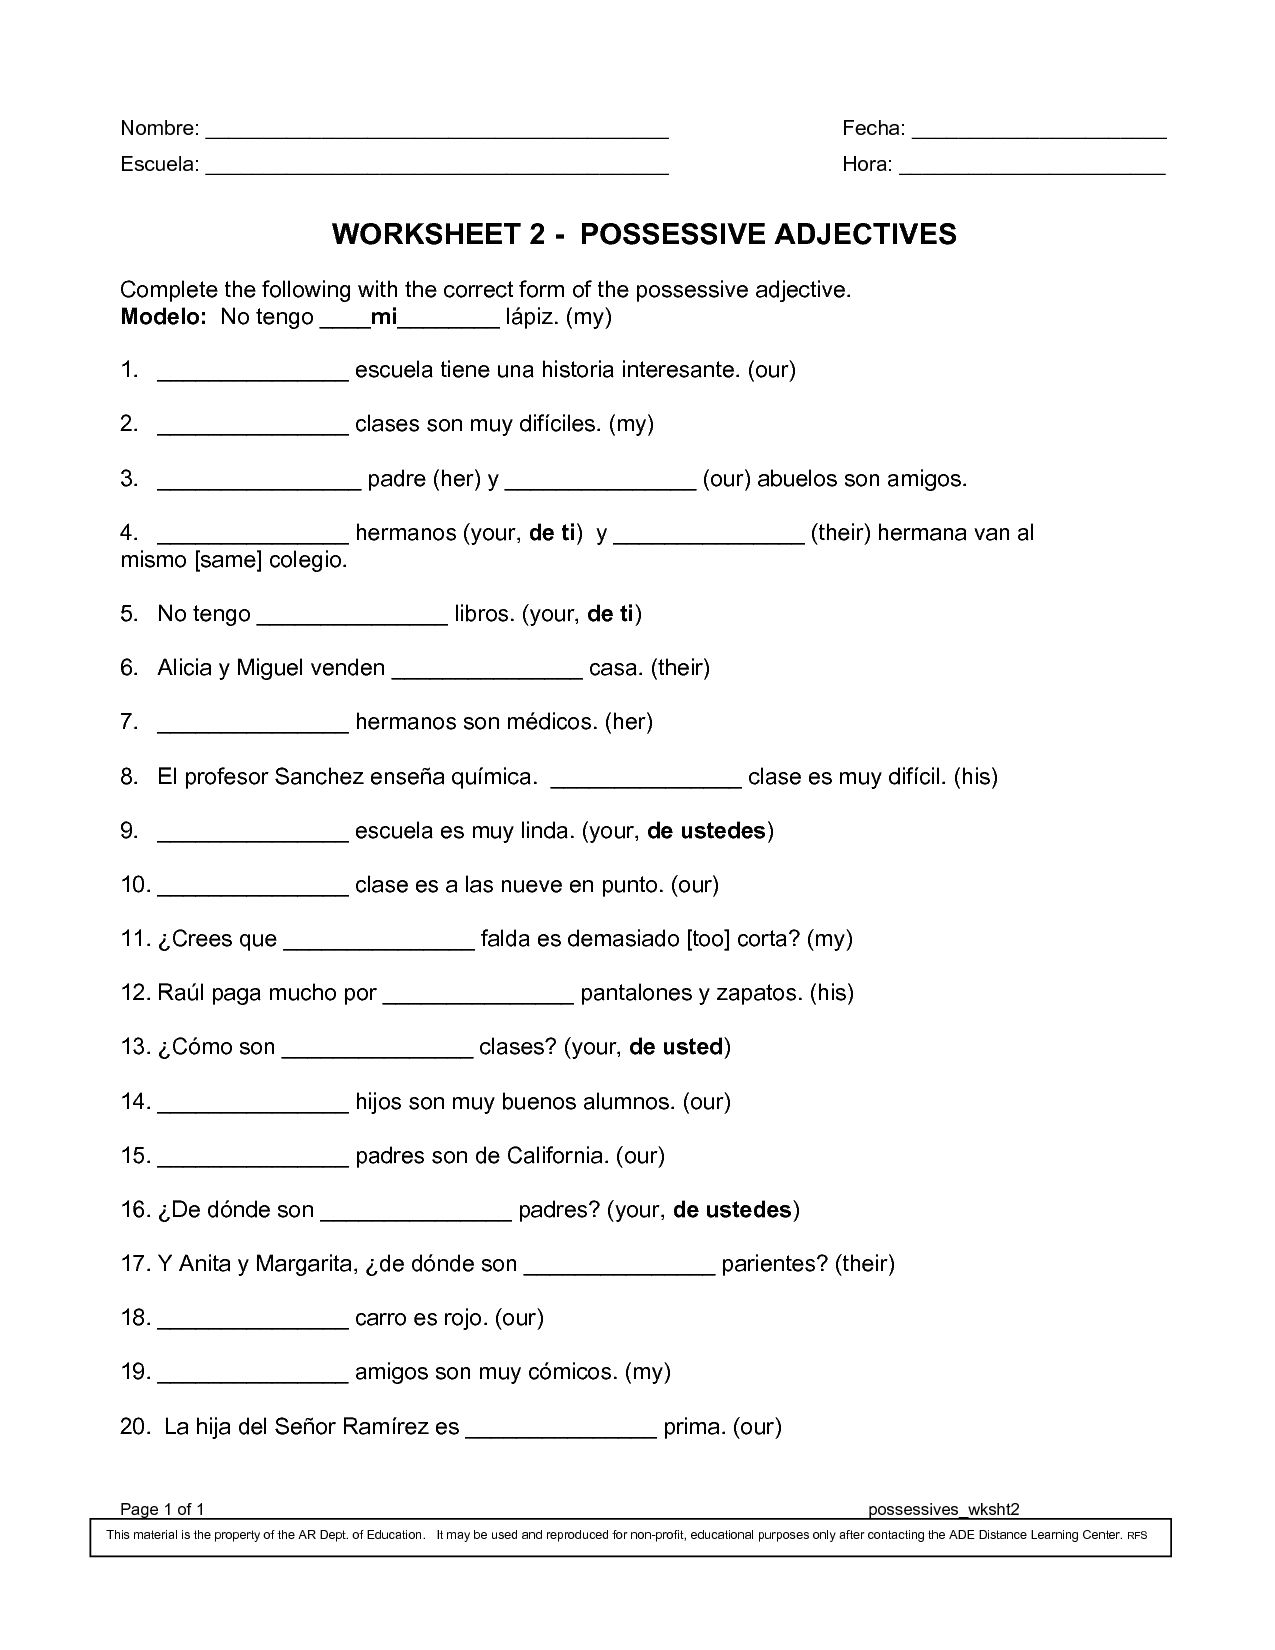 Possessive Adjectives Pronouns Worksheet